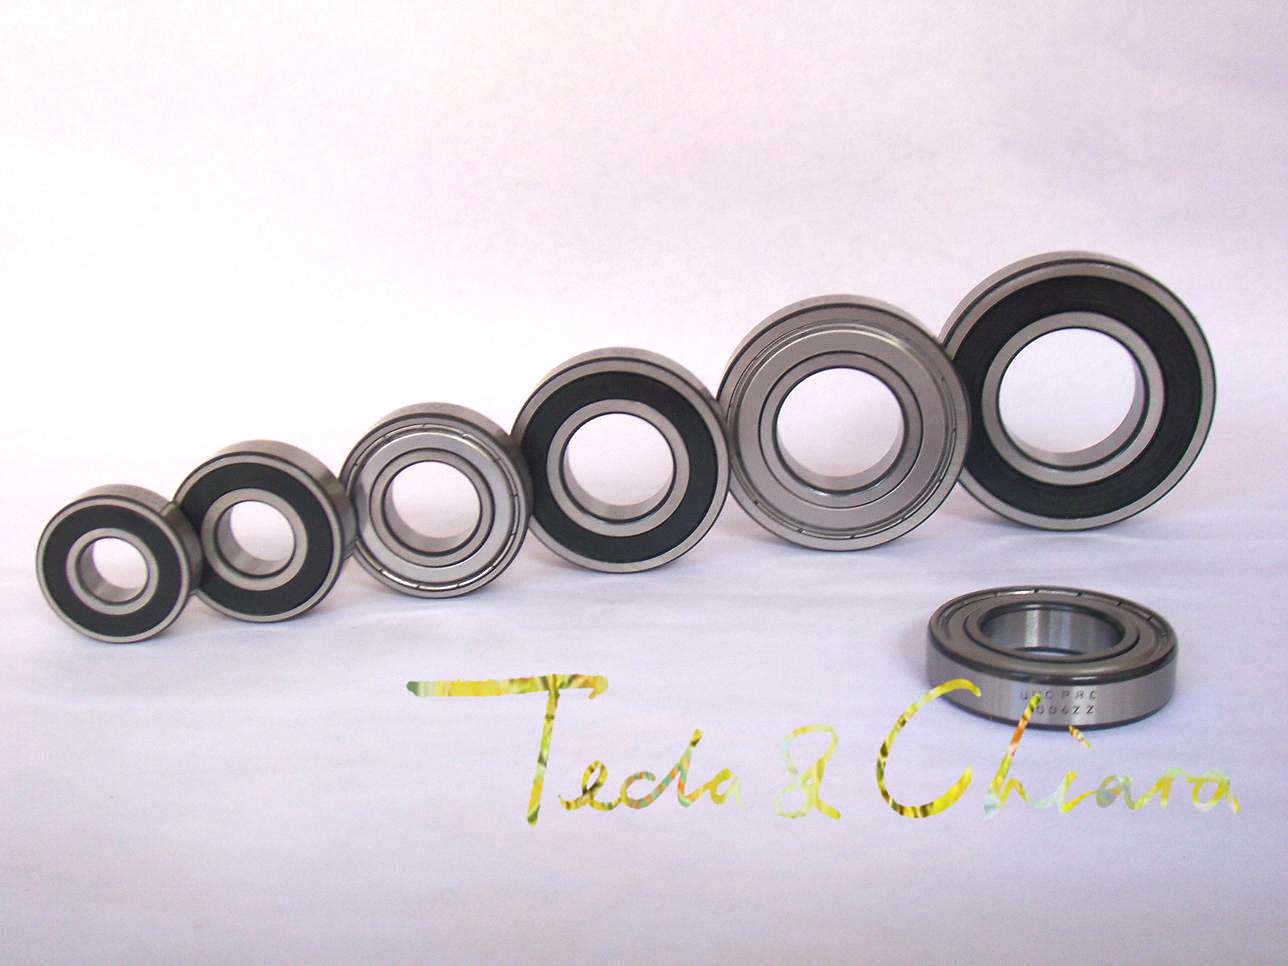 6008 6008ZZ 6008RS 6008-2Z 6008Z 6008-2RS ZZ RS RZ 2RZ Deep Groove Ball Bearings 40 x 68 x 15mm High Quality gcr15 6328 zz or 6328 2rs 140x300x62mm high precision deep groove ball bearings abec 1 p0